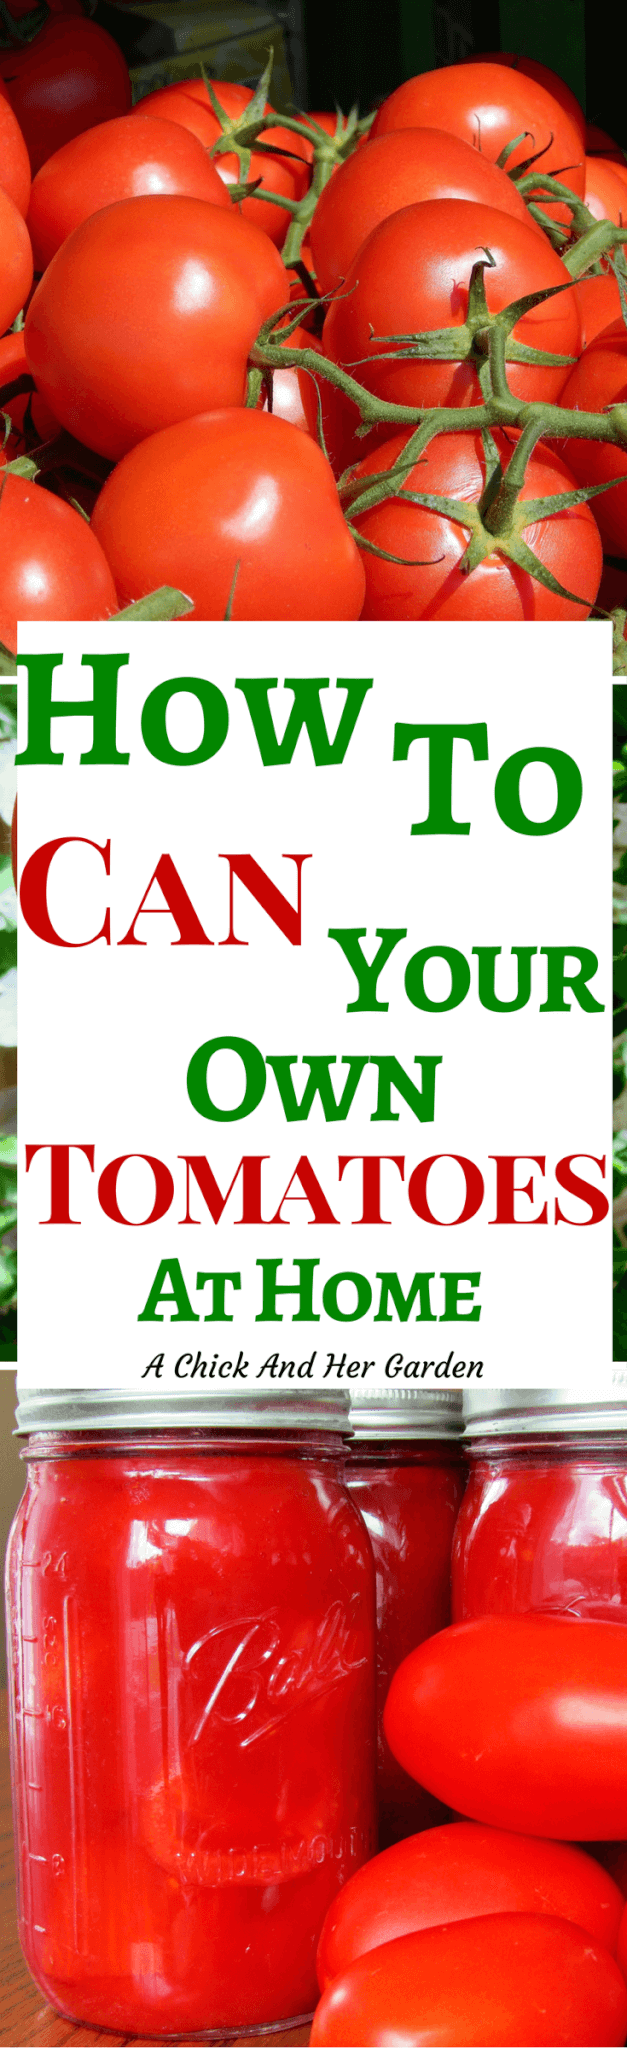 When we run out of canned tomatoes we have a problem! Want to know to know how to can tomatoes? Check it out here!